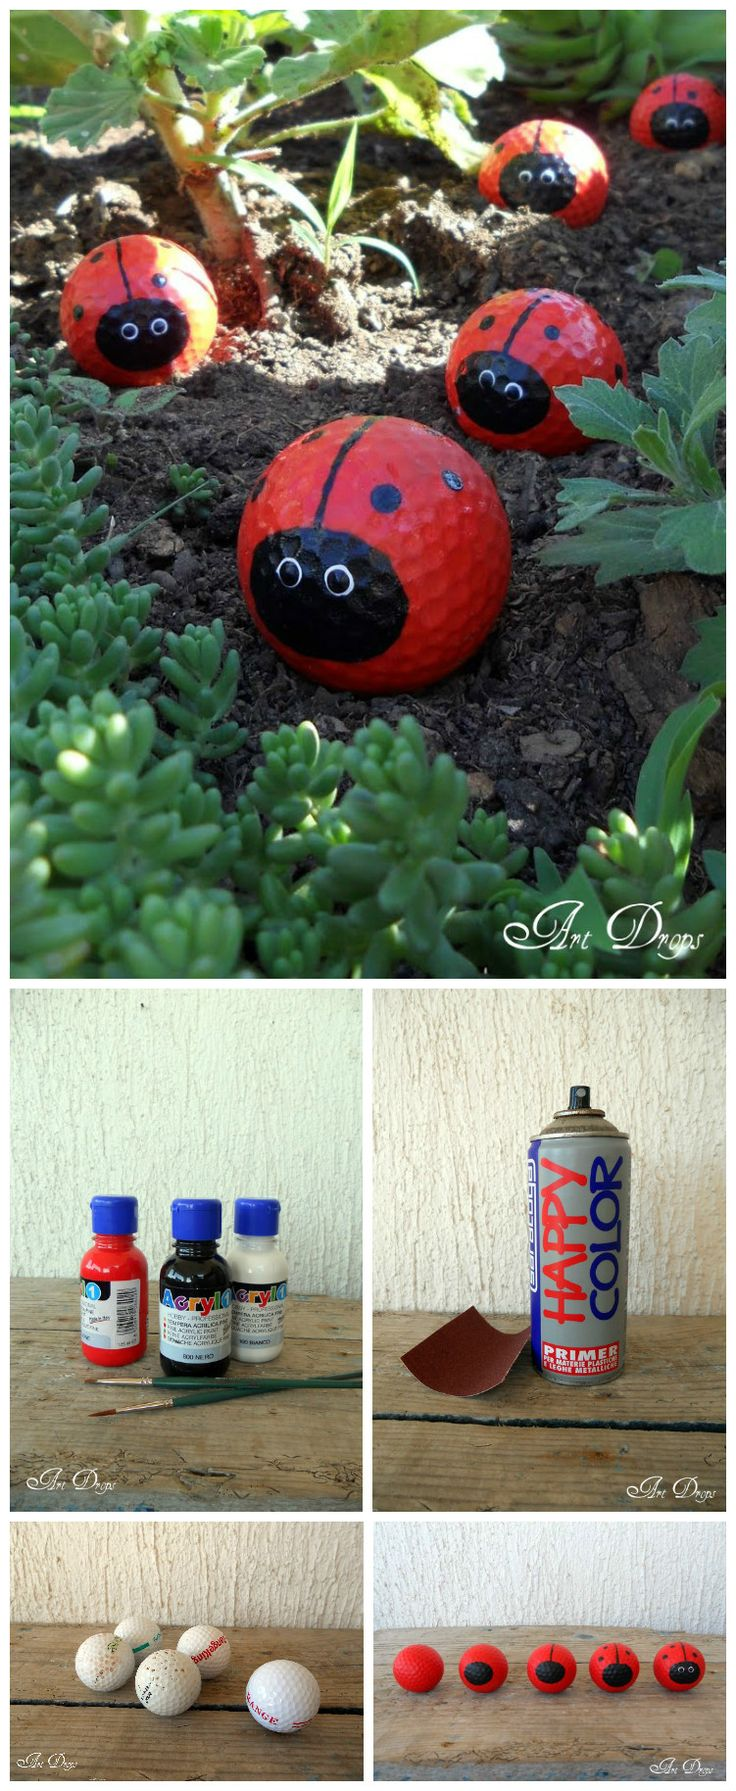 Do you have any old golf balls that you don't use anymore? Here is a nice tutorial found at Artdrops to reuse them into happy ladybugs for your garden :) Sand the golf balls all over the surface with a sandpaper and spray primer paint for the final paint to better adhere on their surface. When the…